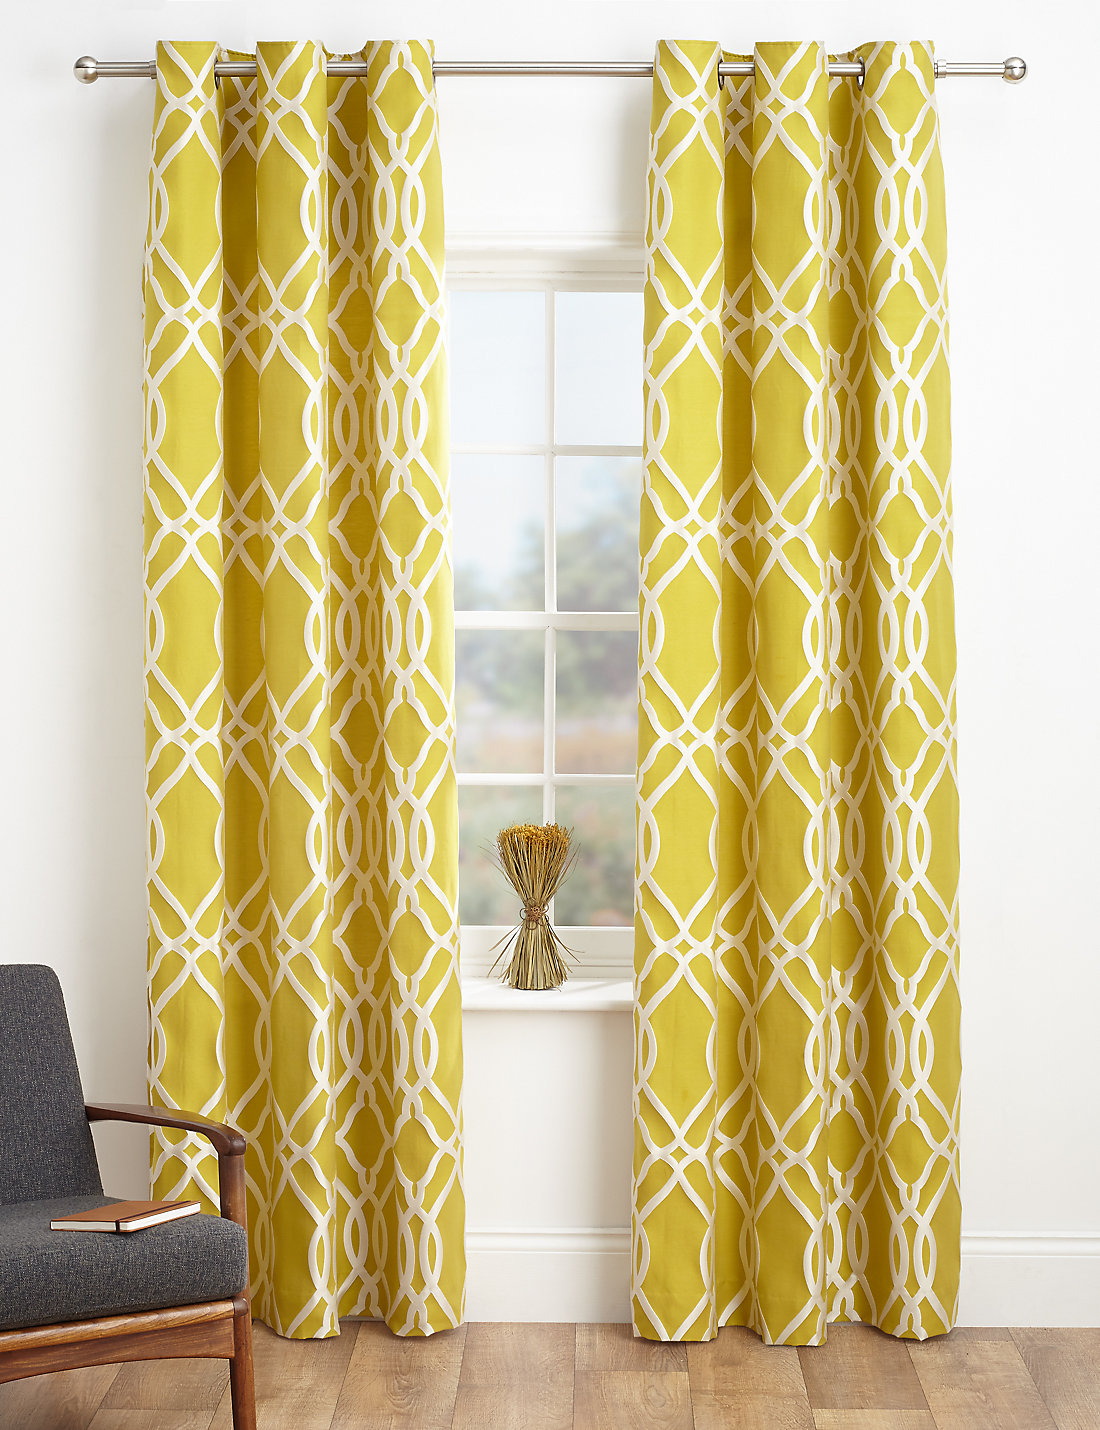 Navy blue patterned curtains - Navy Blue Patterned Curtains Uk Cutain Wbi